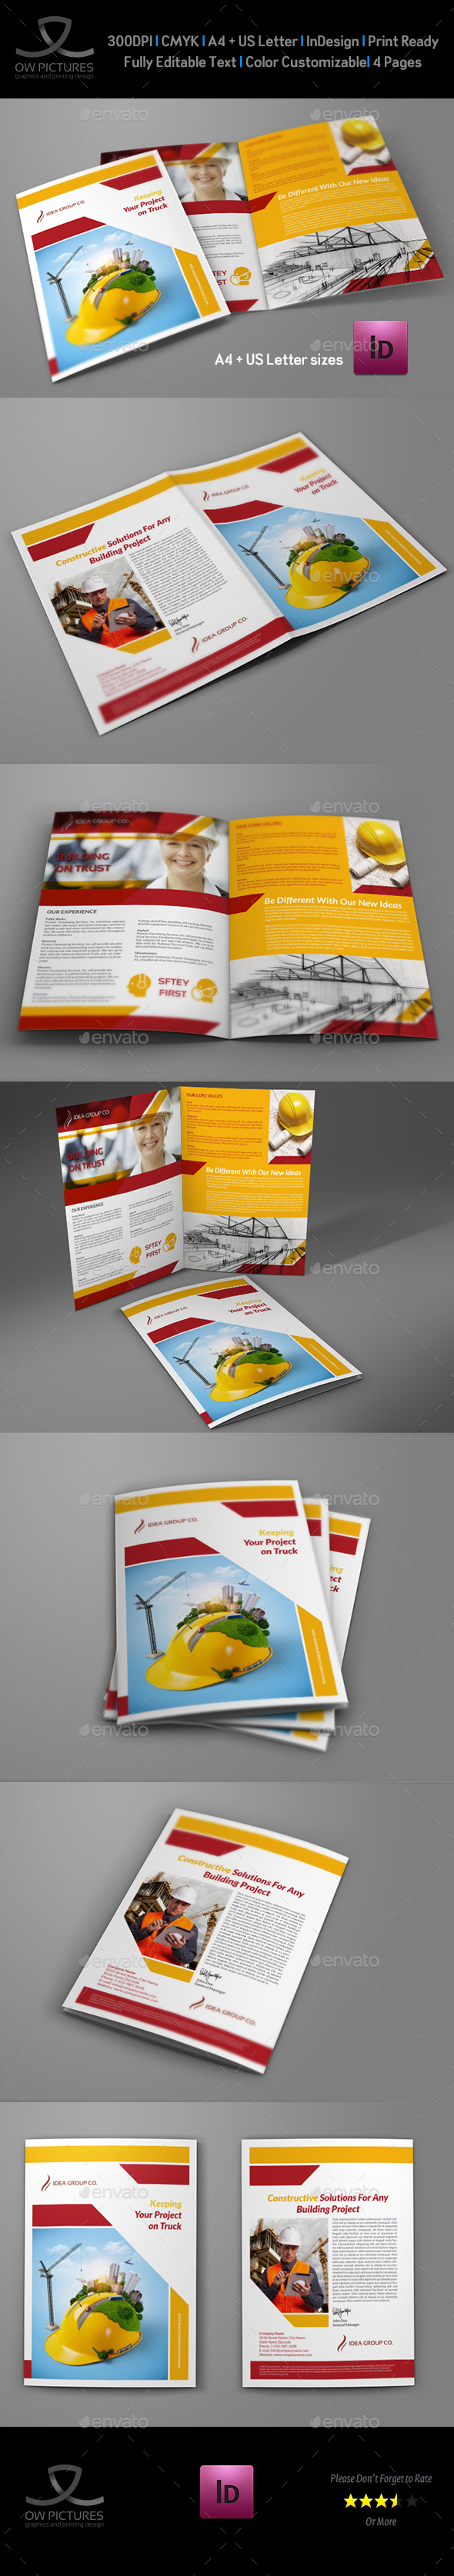 Construction Company Brochure Bi-Fold Vol.2 - Corporate Brochures